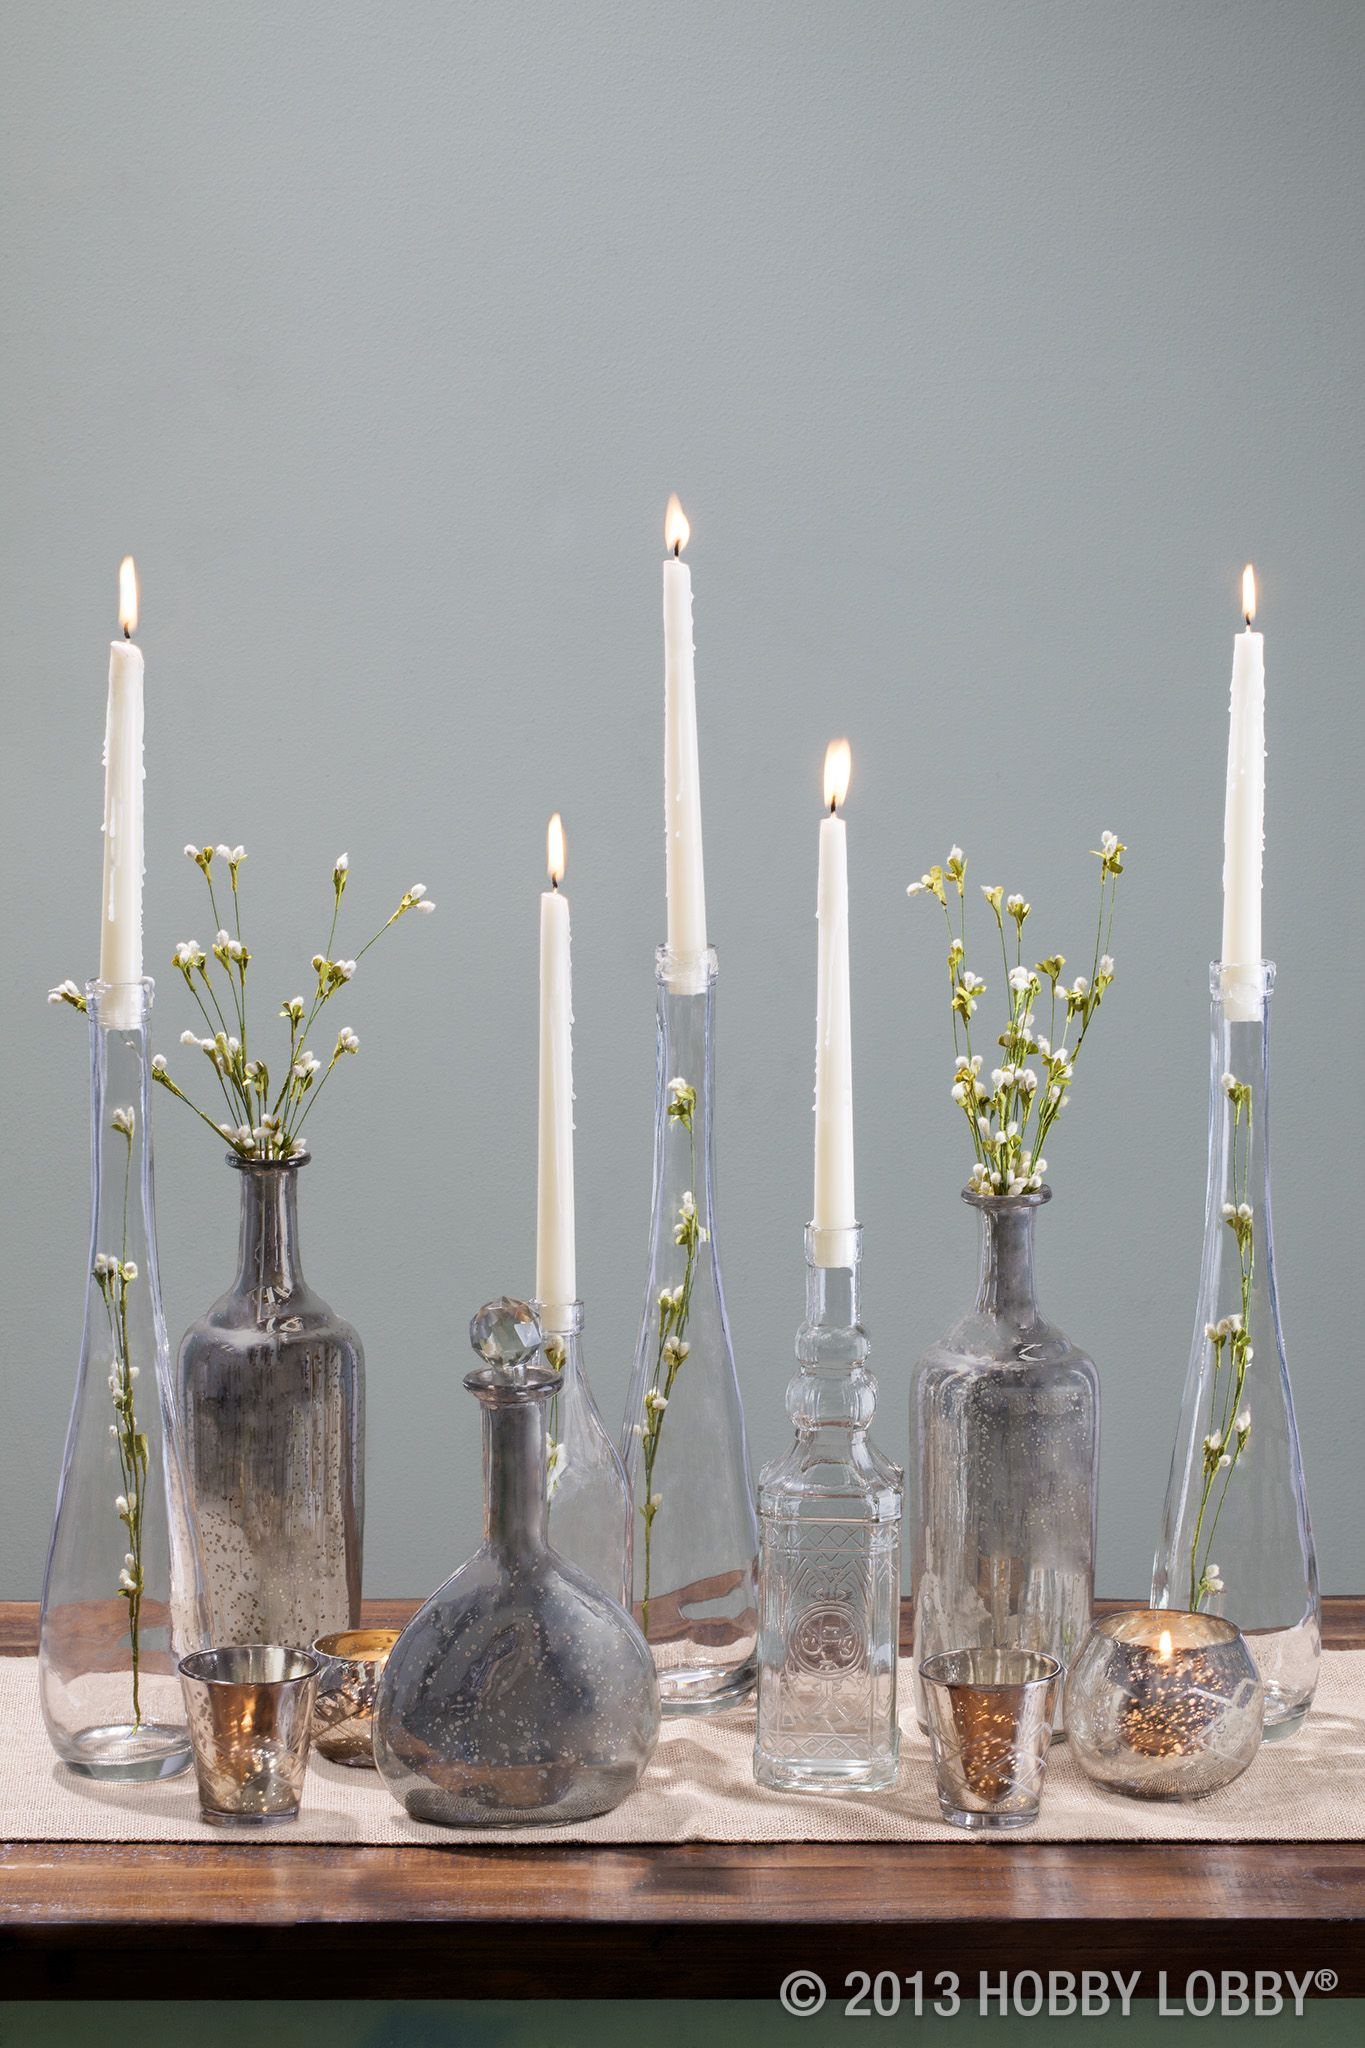 metal vases at hobby lobby of brighten up an entryway table with large glass vases displaying intended for brighten up an entryway table with large glass vases displaying candles and greenery vlastnoruana dekoracehobby lobbylobbiesvanoce